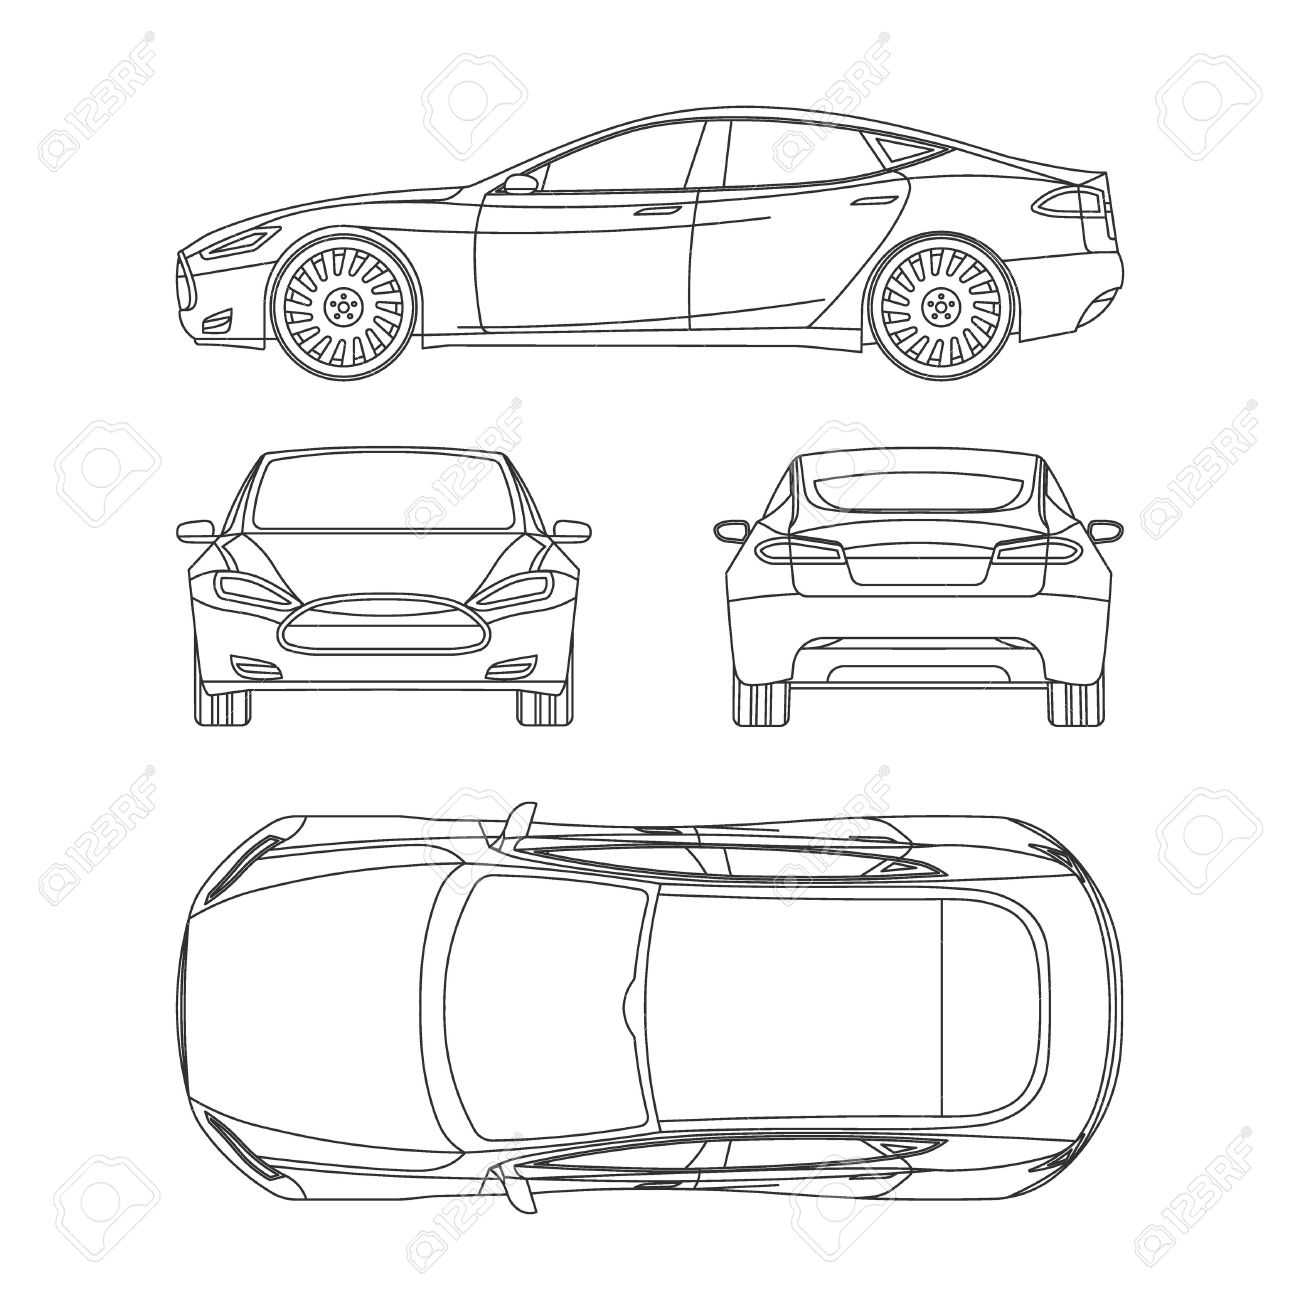 Car Line Draw Insurance, Rent Damage, Condition Report Form Blueprint With Car Damage Report Template